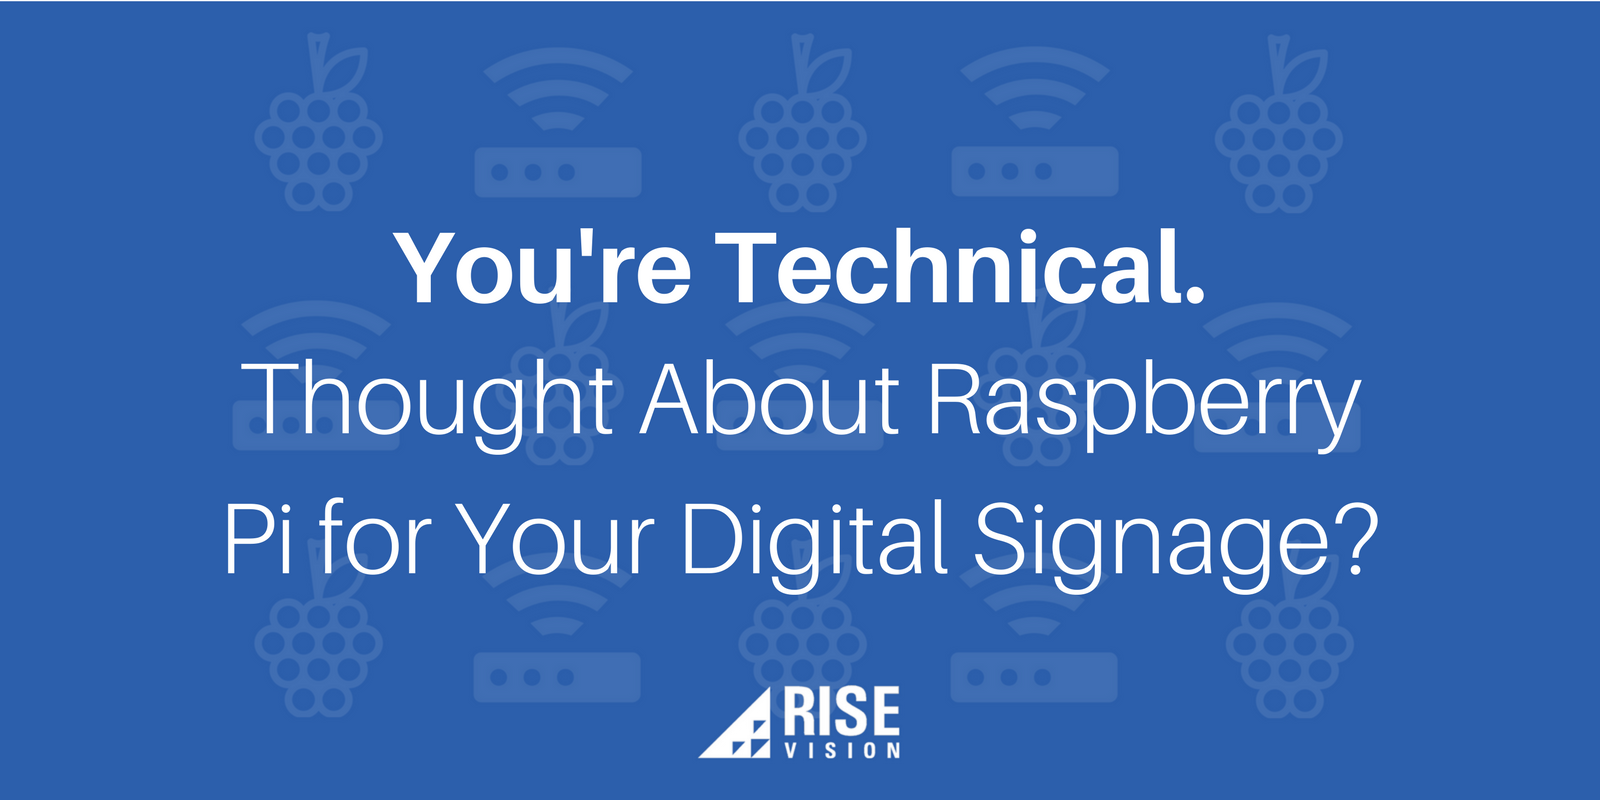 You're Technical. Thought About Raspberry Pi for Your Digital Signage.png